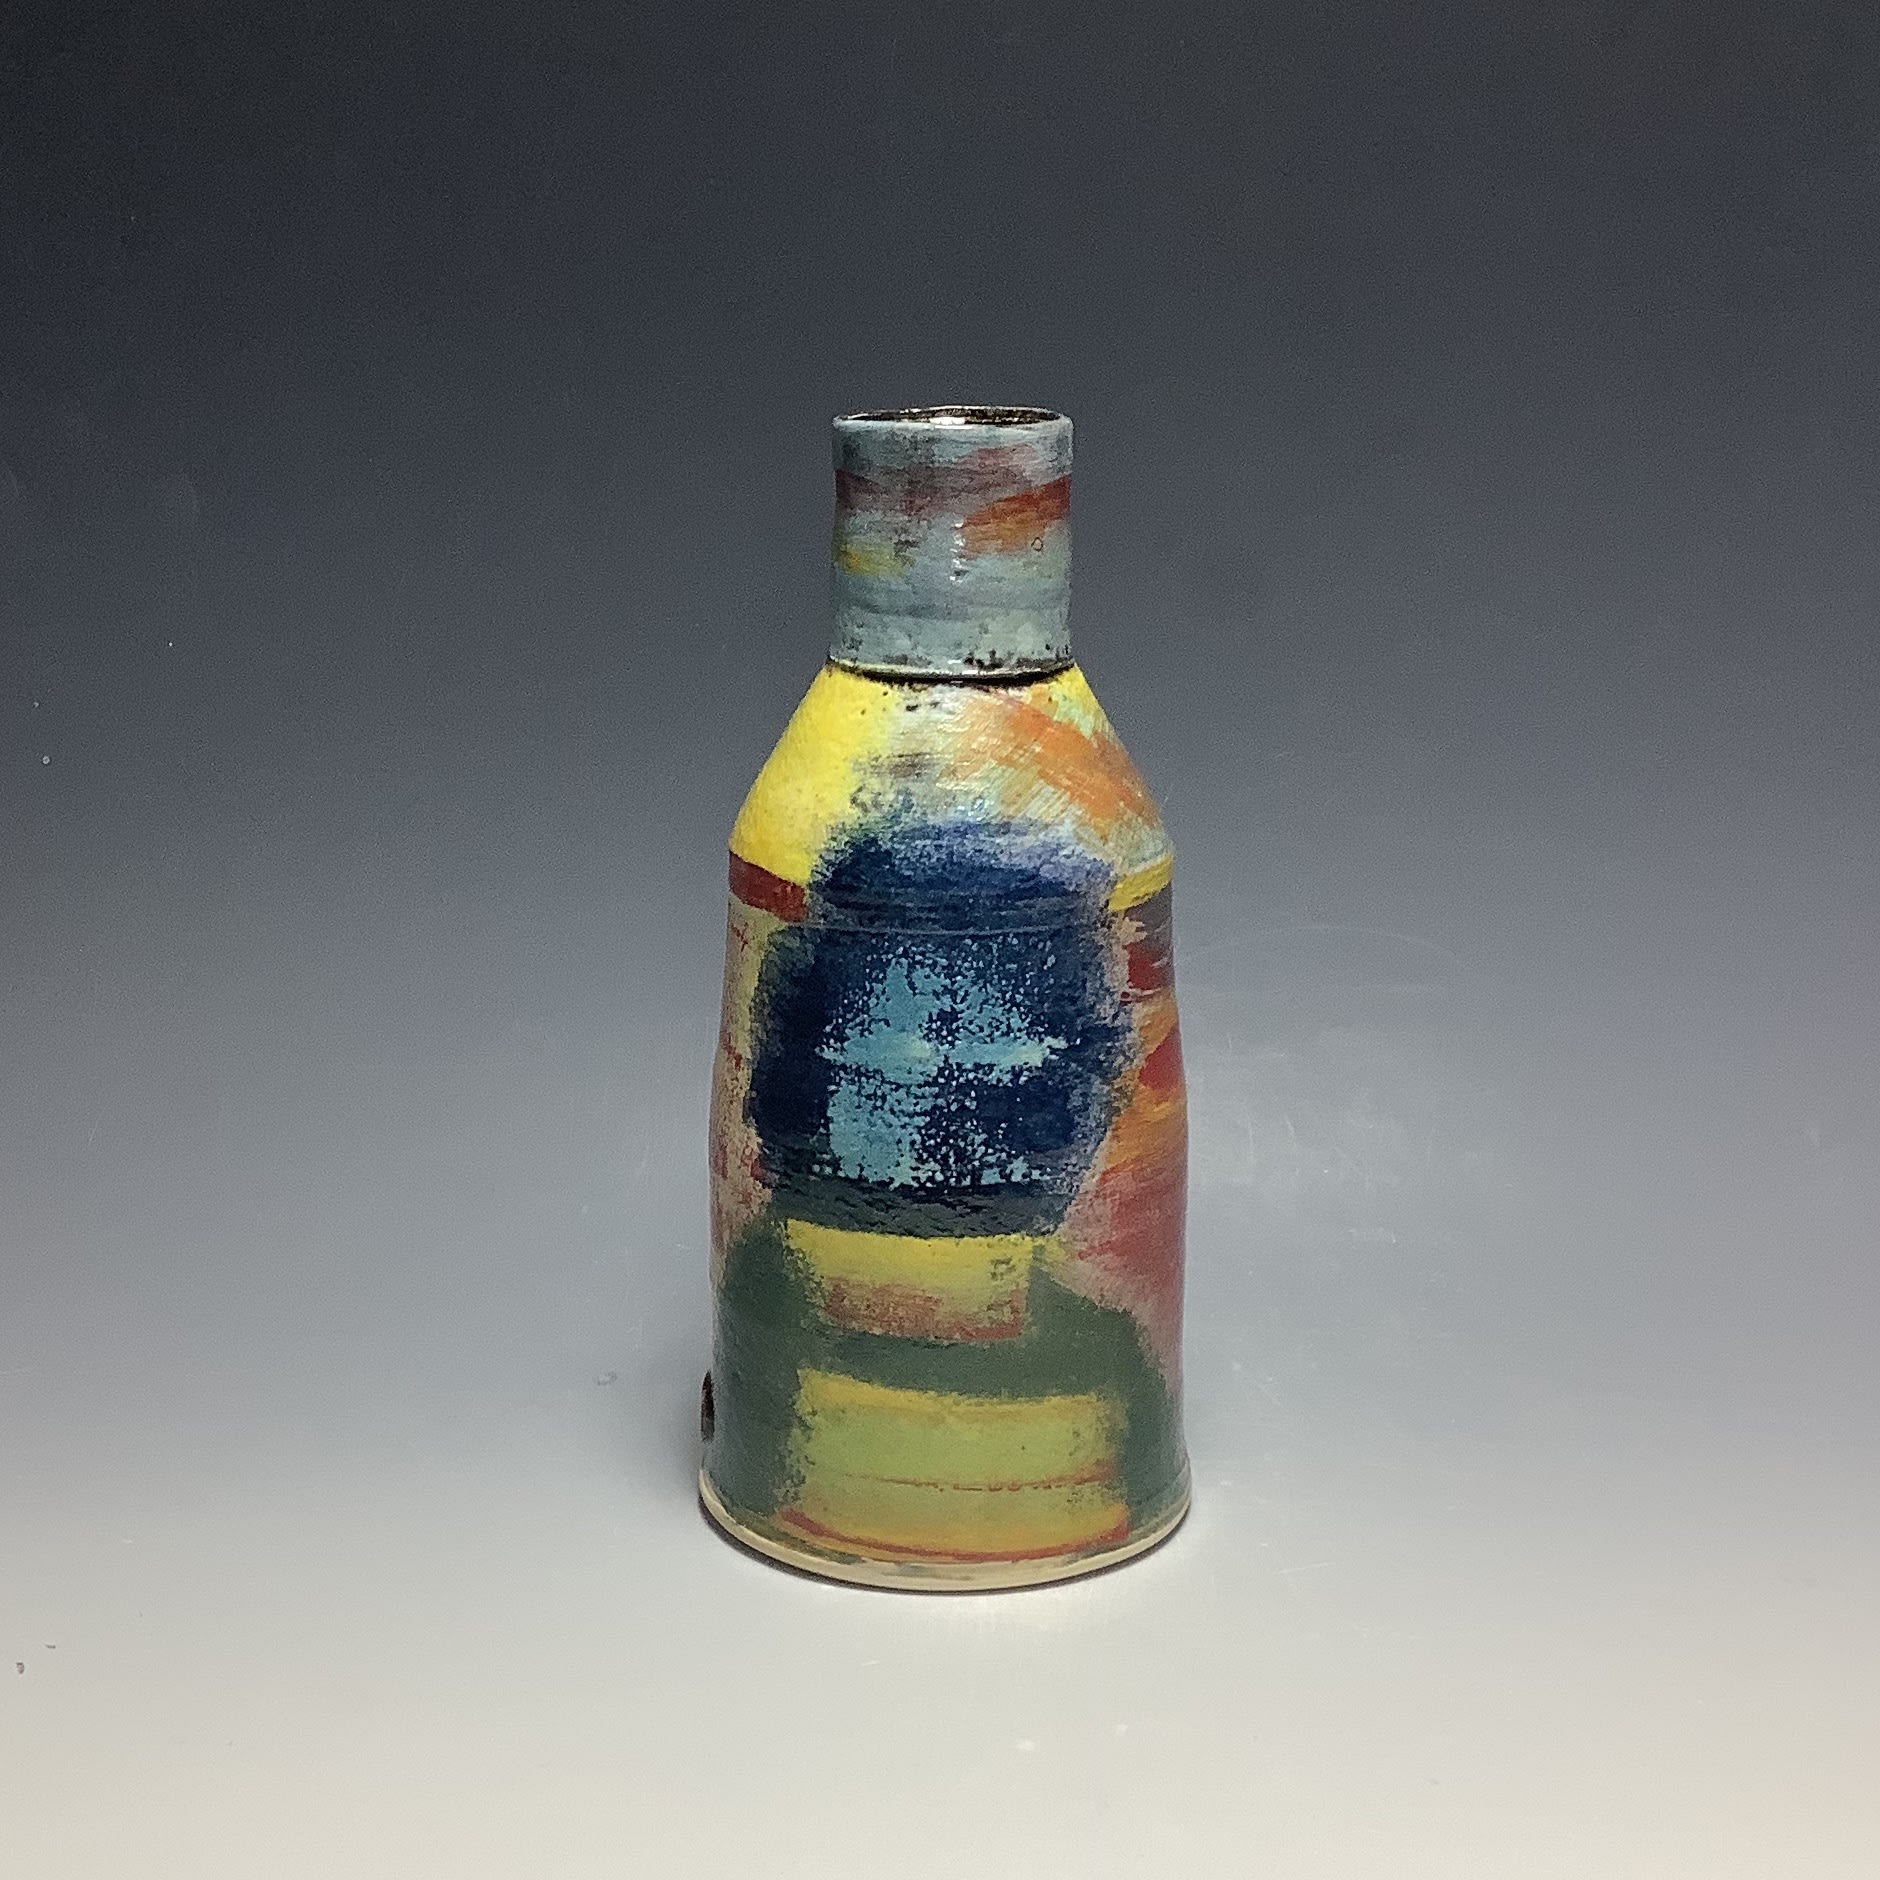 """<span class=""""link fancybox-details-link""""><a href=""""/artists/100-john-pollex/works/6837-john-pollex-small-bottle-2020/"""">View Detail Page</a></span><div class=""""artist""""><strong>John Pollex</strong></div> b. 1941 <div class=""""title""""><em>Small Bottle</em>, 2020</div> <div class=""""signed_and_dated"""">impressed with the artist's seal mark 'JP'</div> <div class=""""medium"""">white earthenware decorated with coloured slips</div> <div class=""""dimensions"""">h. 7.5 in</div><div class=""""price"""">£176.00</div><div class=""""copyright_line"""">Ownart: £176 x 10 Months, 0% APR</div>"""